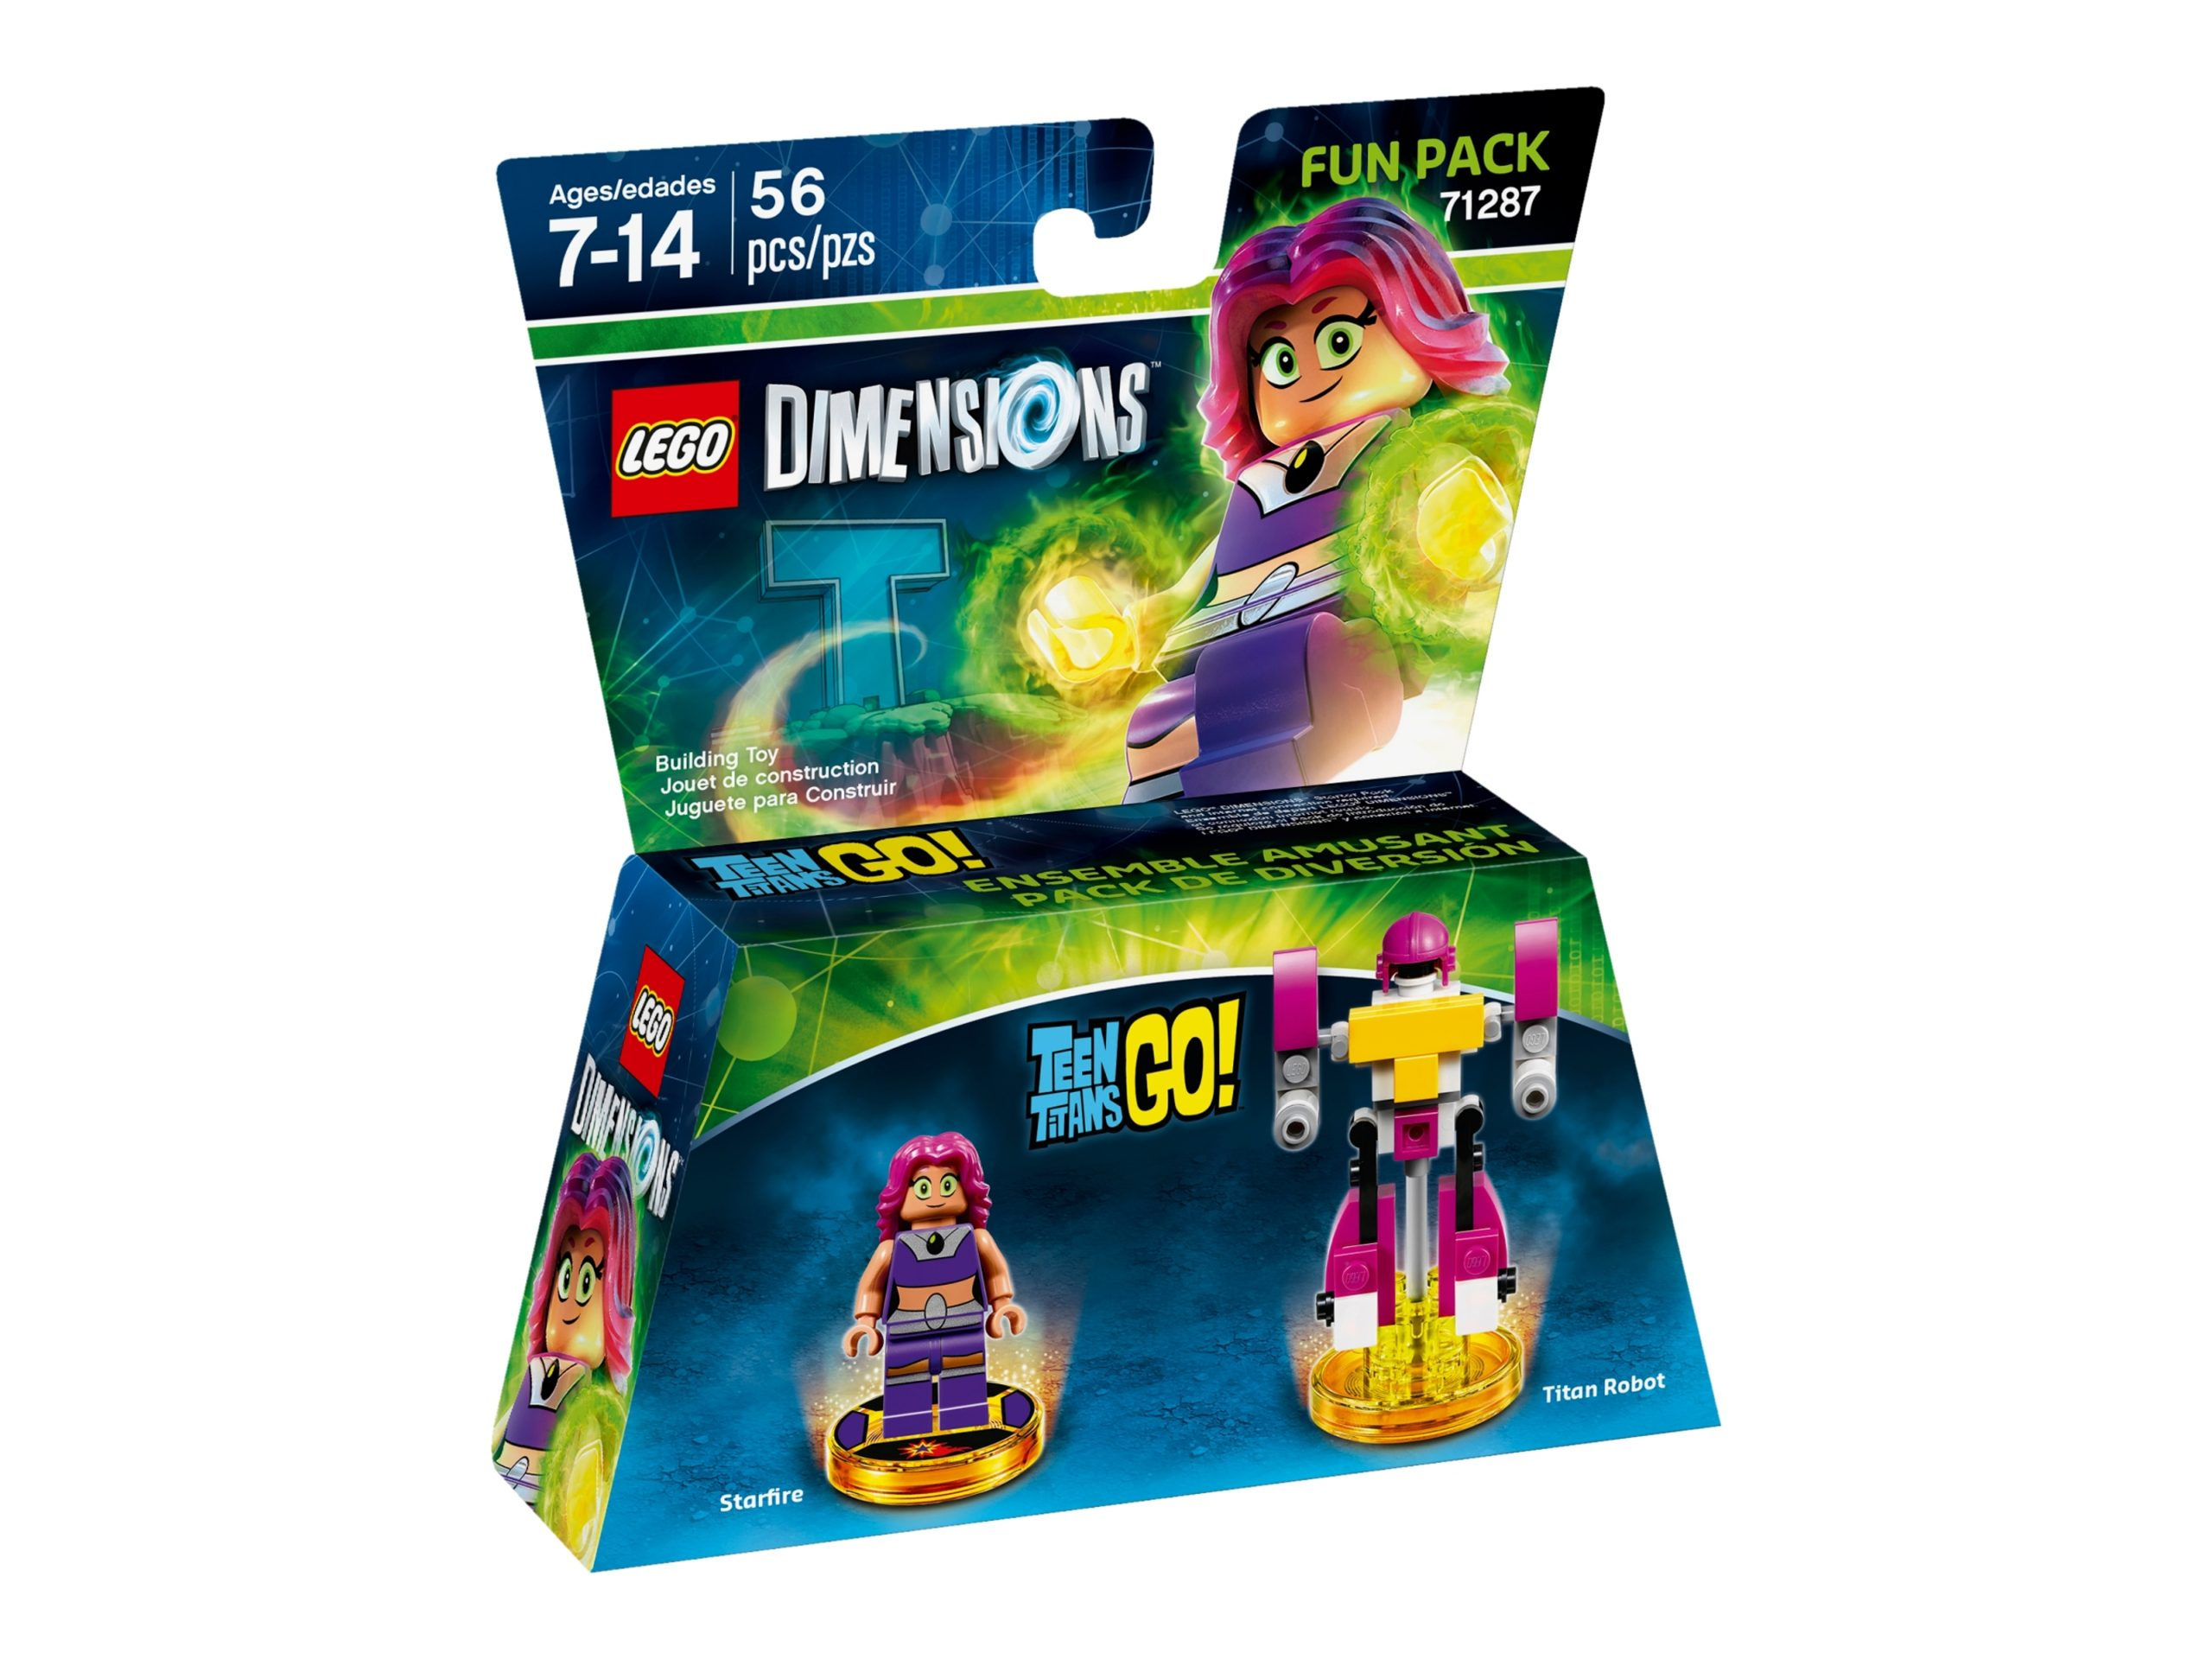 lego 71287 teen titans go fun pack scaled